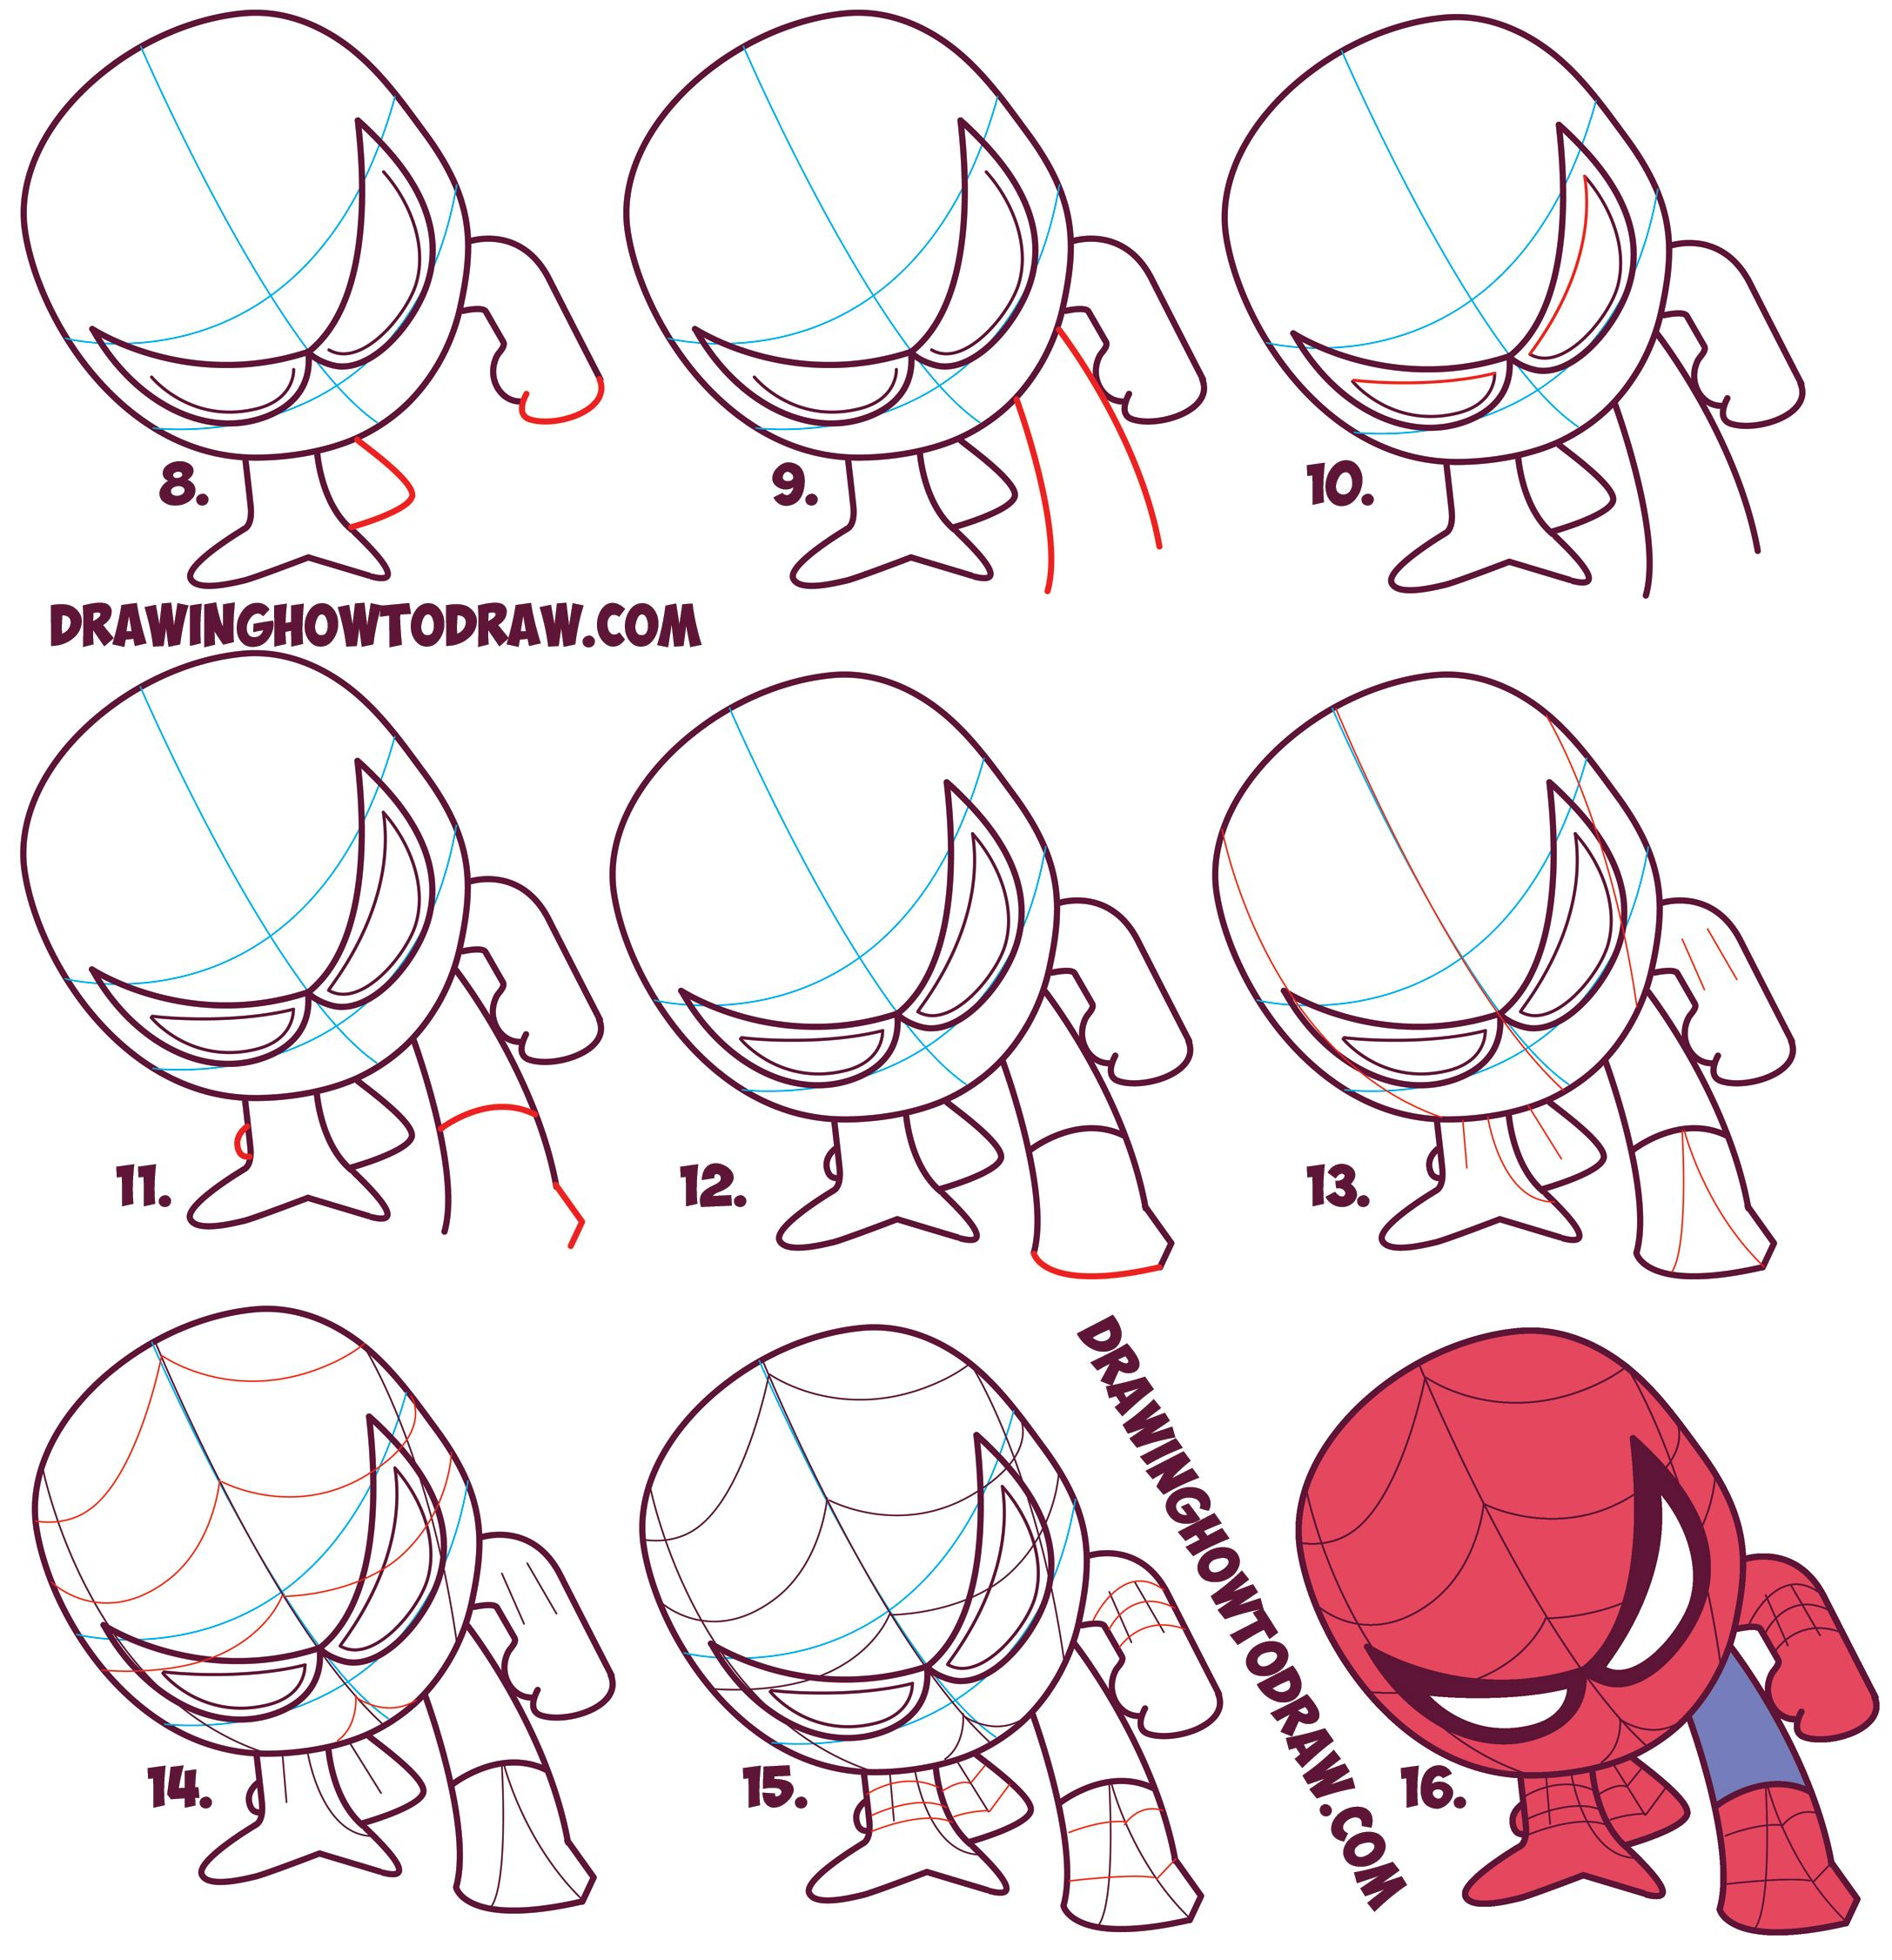 Learn how to draw cartoon spiderman cute chibi kawaii simple steps drawing lesson for kids